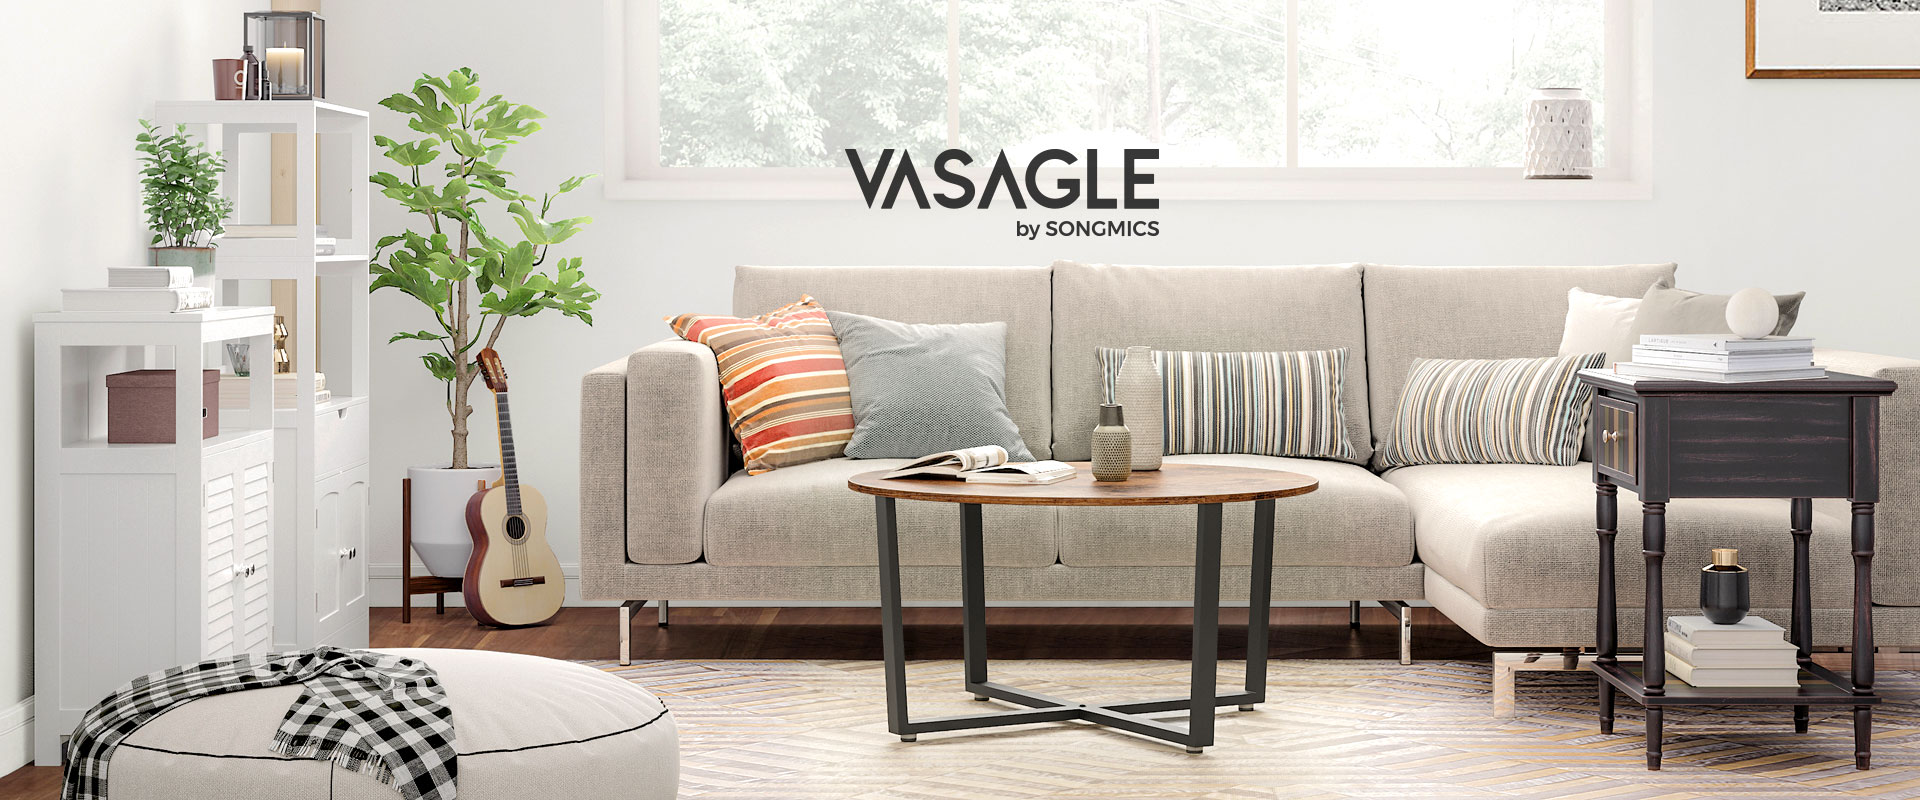 VASAGLE by SONGMICS